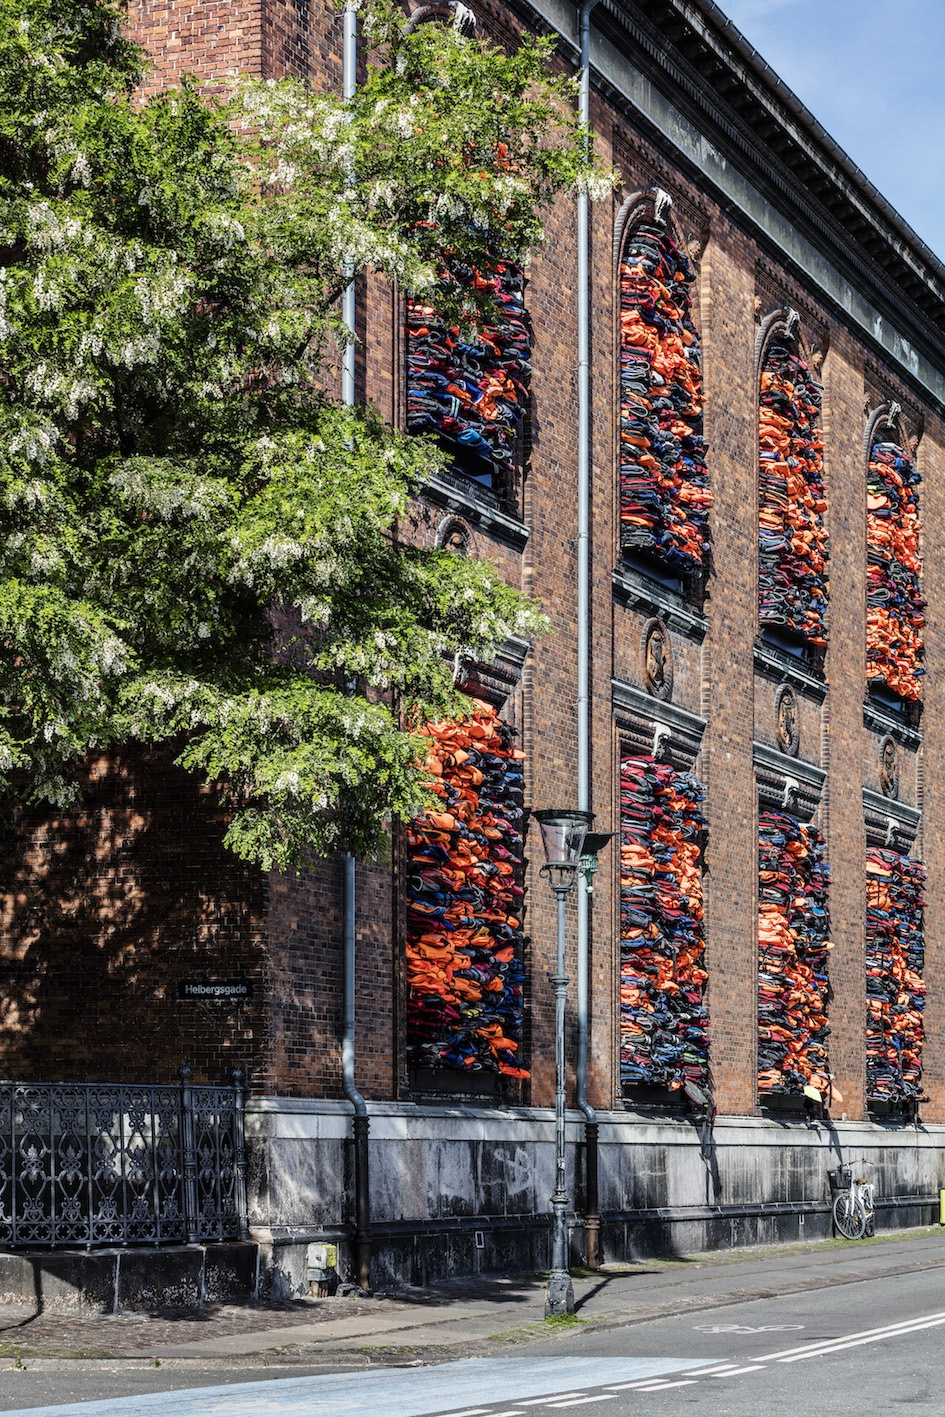 "Ai Weiwei, ""Soleil Levant"", 2017. Installation view, Kunsthal Charlottenborg, 2017. Life jackets in front of windows of facade. Courtesy of the artist. Photo by Anders Sune Berg"